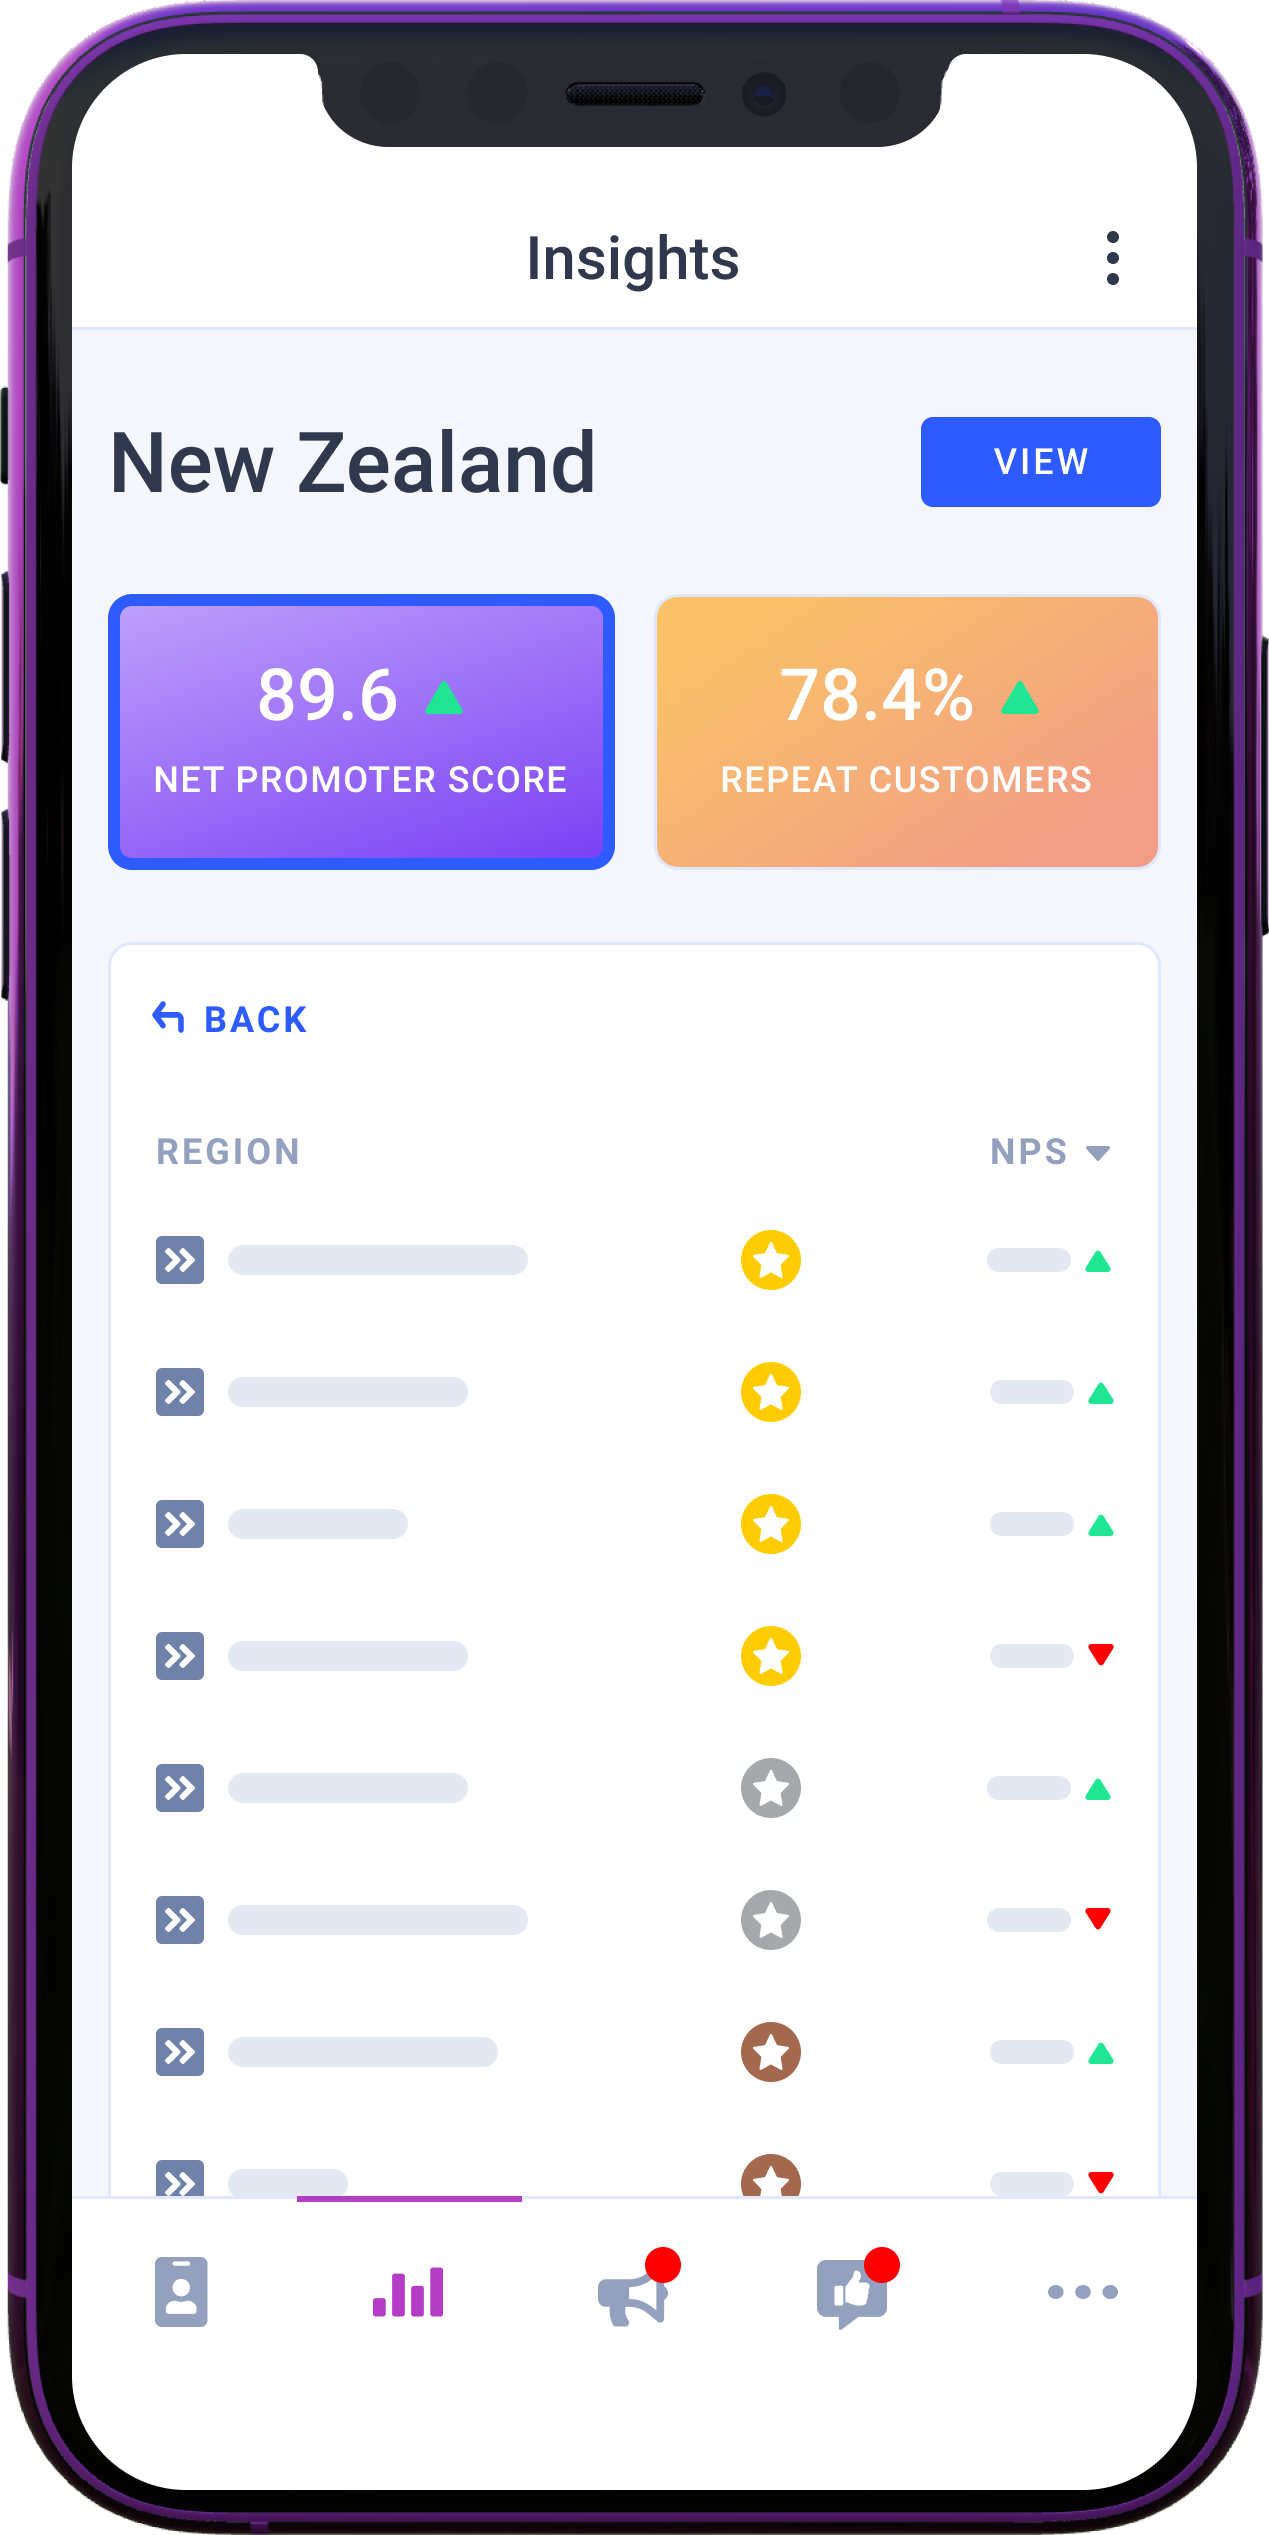 insights screen on mobile device shows net promoter score and repeat customers increasing